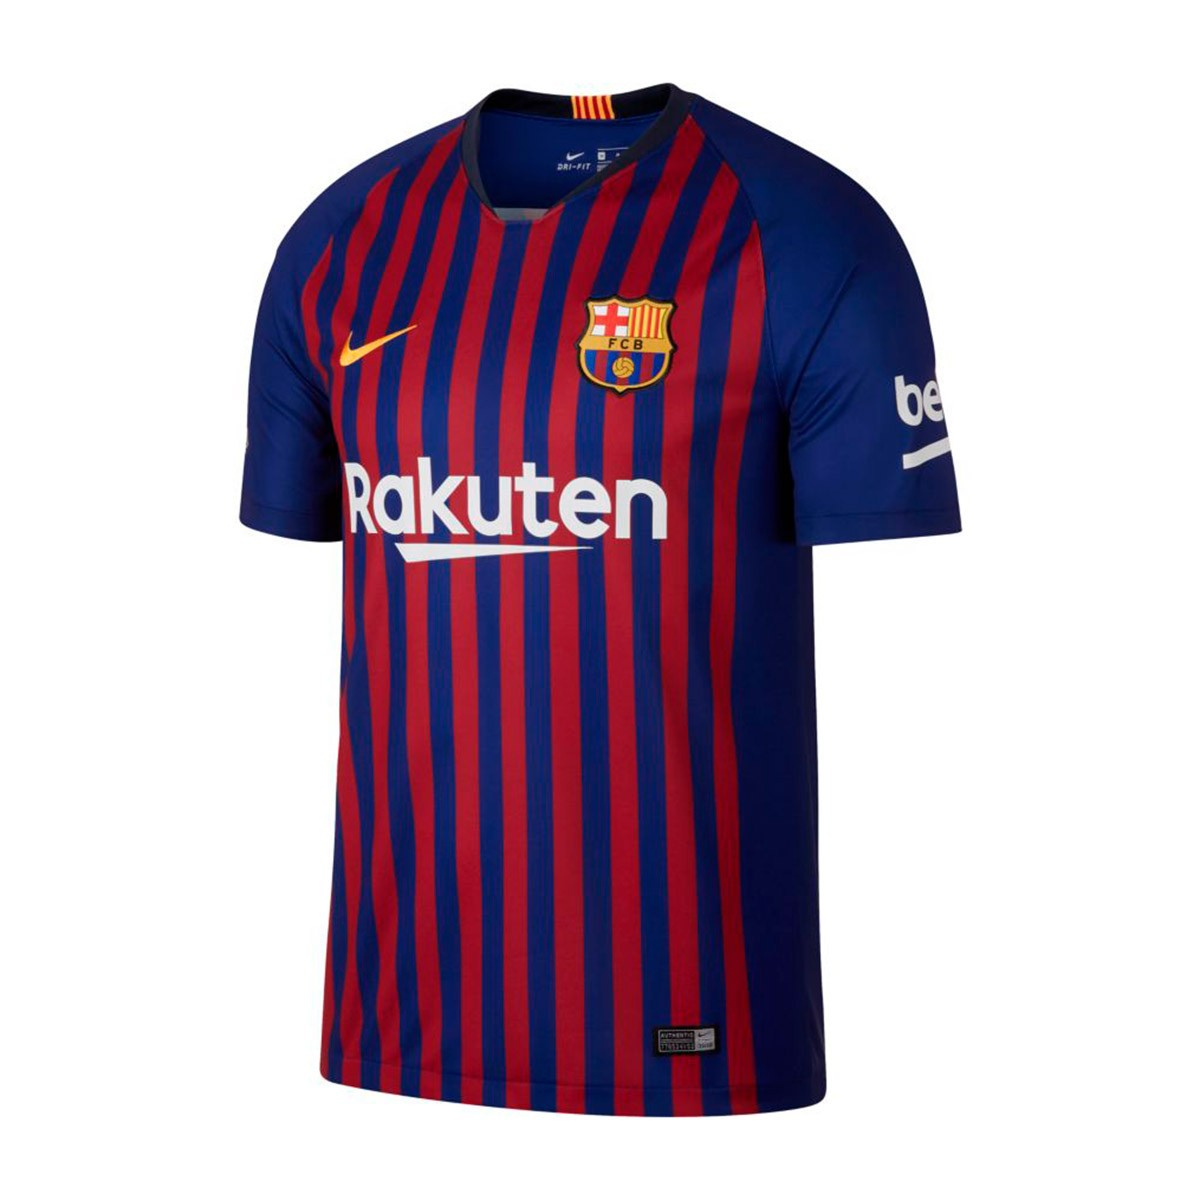 782892ed414 Camiseta Nike FC Barcelona Stadium Primera Equipación 2018-2019 Deep royal  blue-University gold - Tienda de fútbol Fútbol Emotion